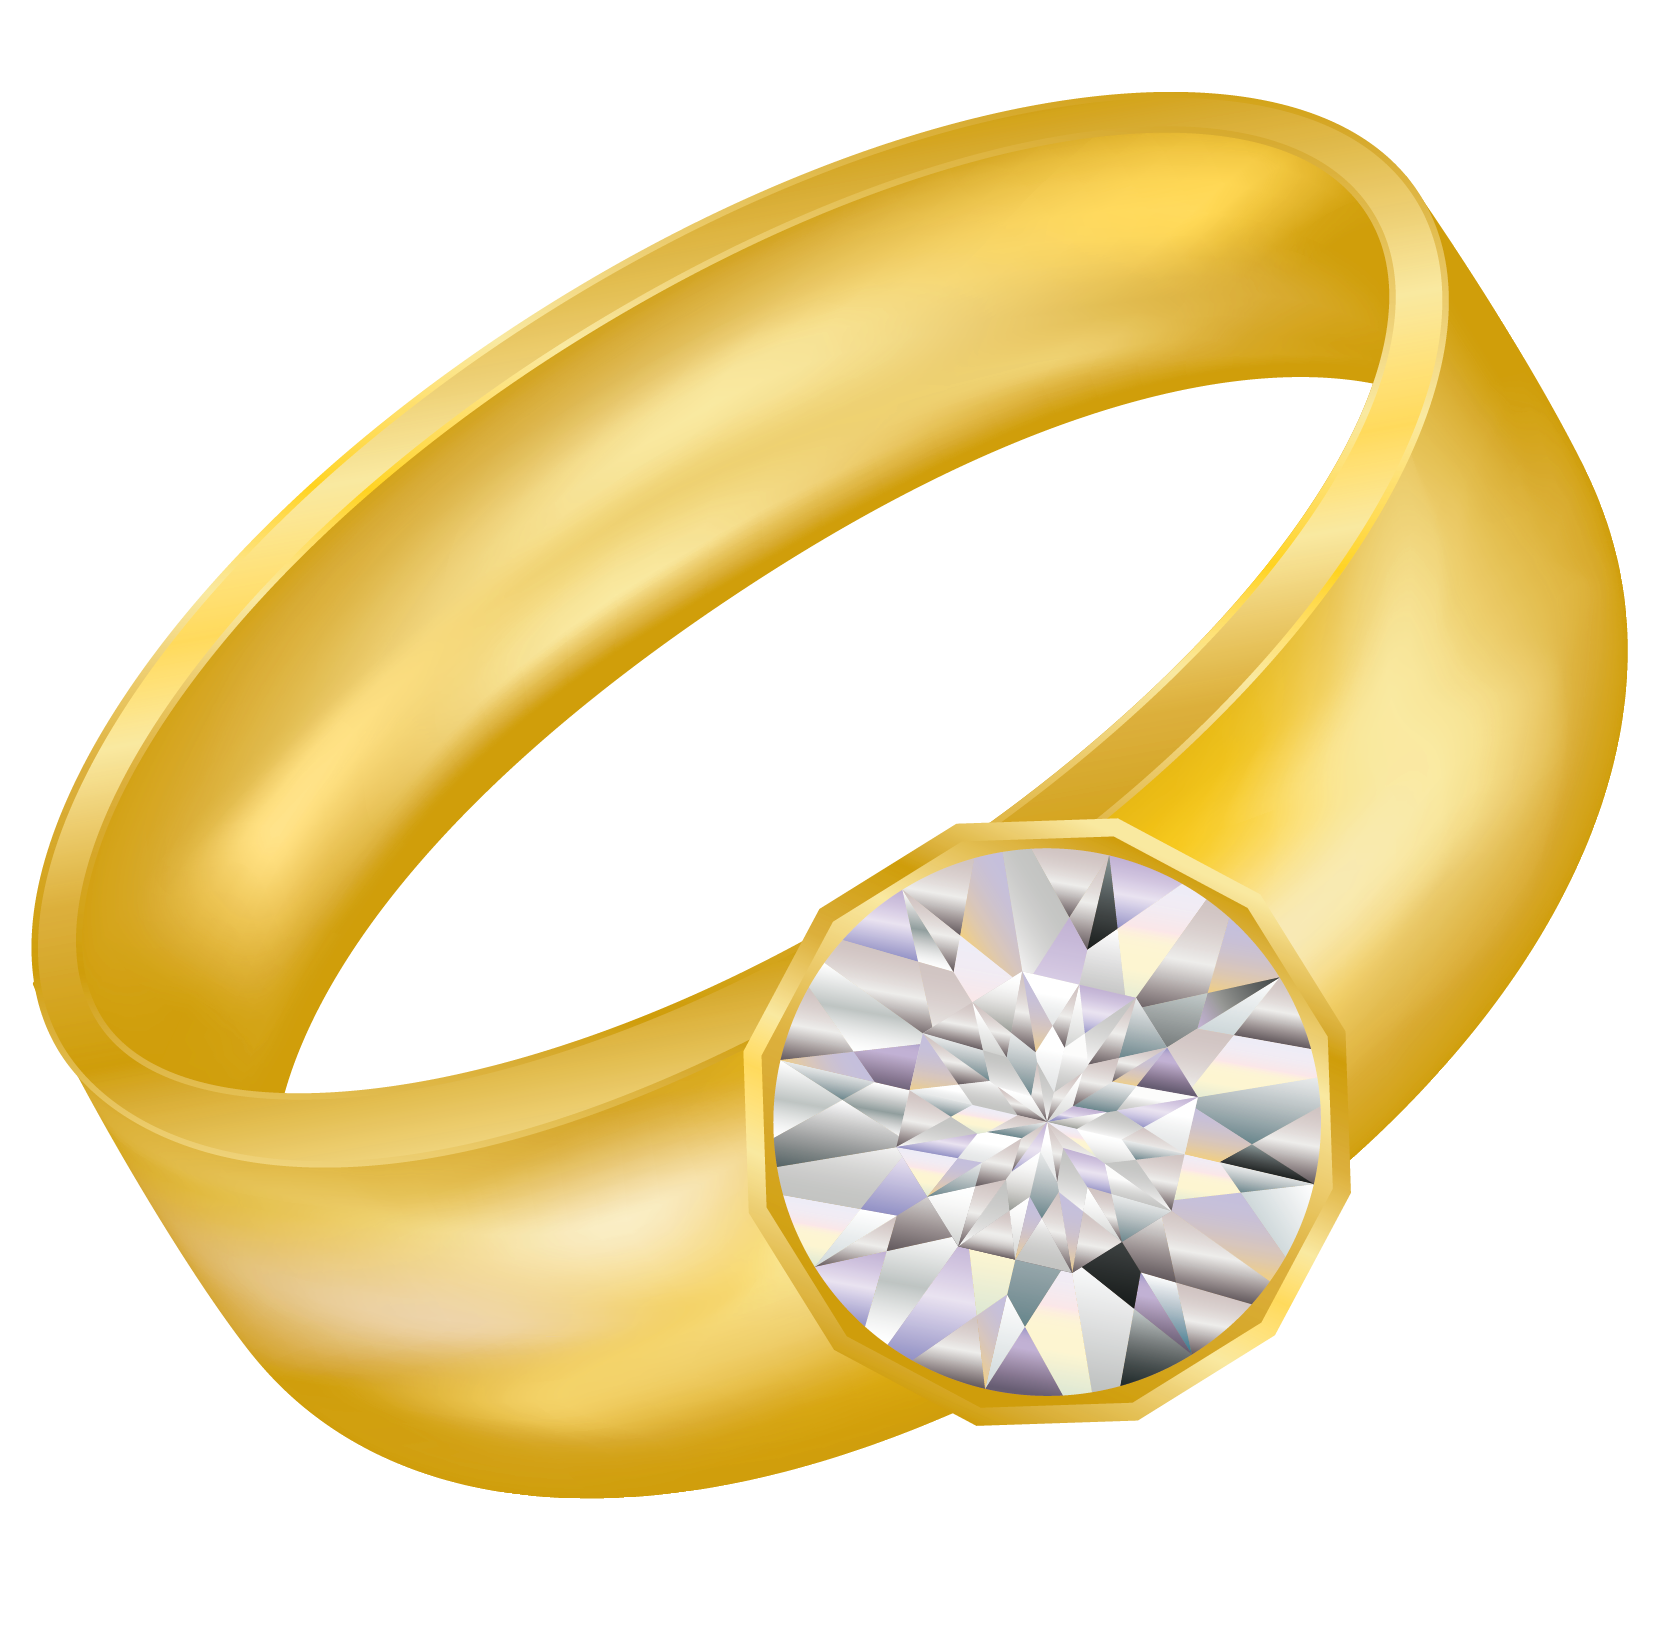 Gold Ring With Diamond Png Image Diamond Rings Golden Ring